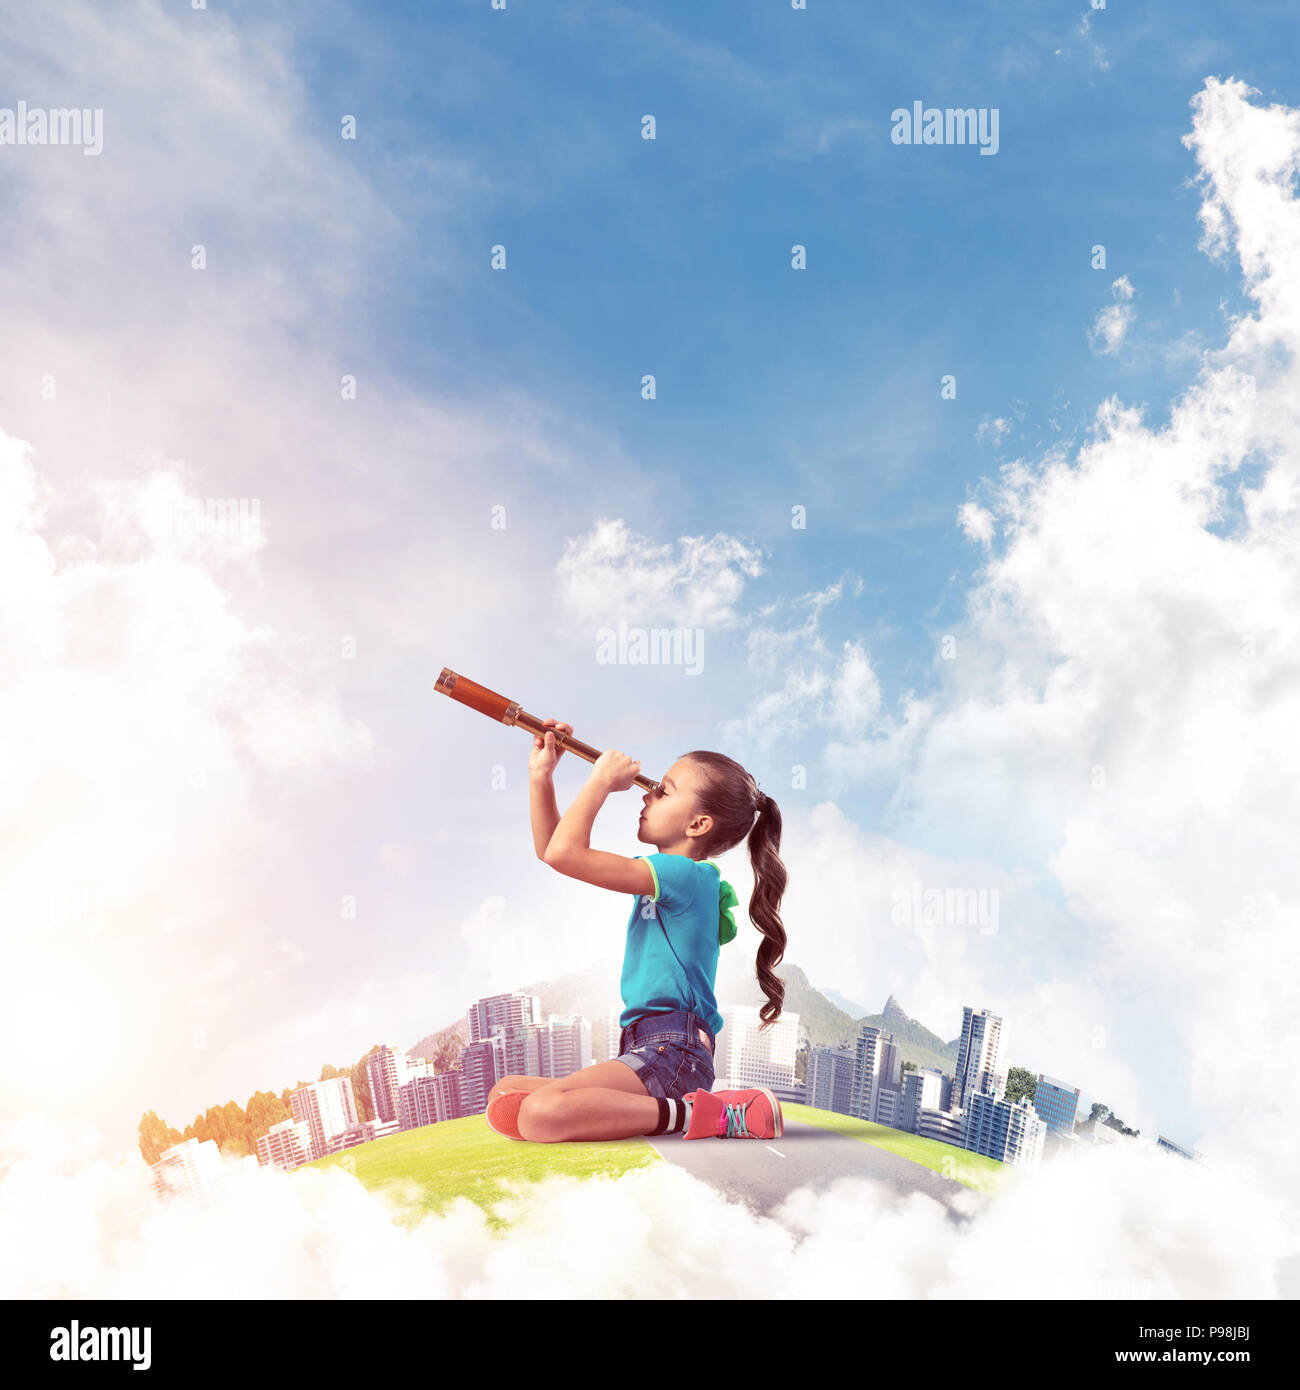 Concept of careless happy childhood with girl looking in future - Stock Image